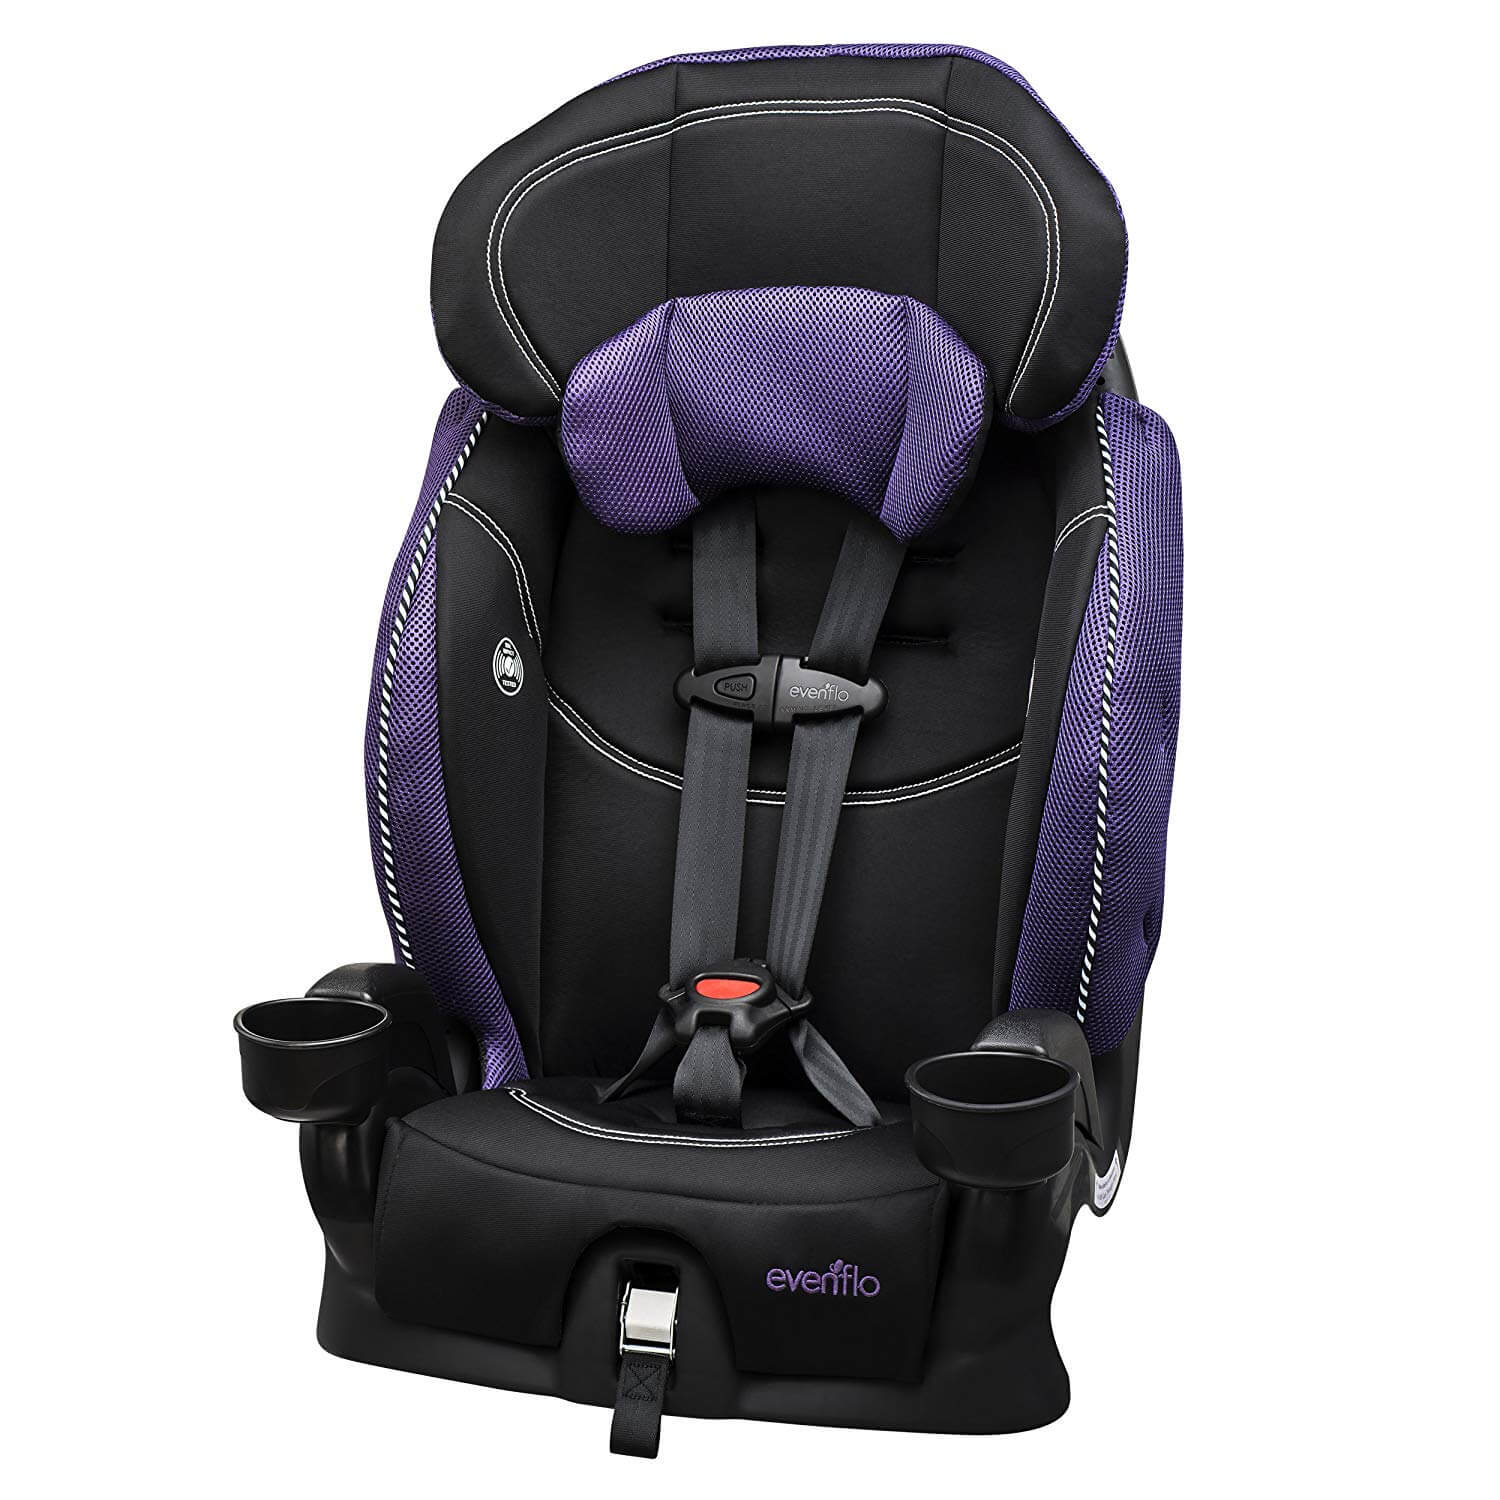 seat booster evenflo chase seats lx harnessed travel jasmin olds comfort target harness rightfit baby jameson portable harmony lightweight hollyhock